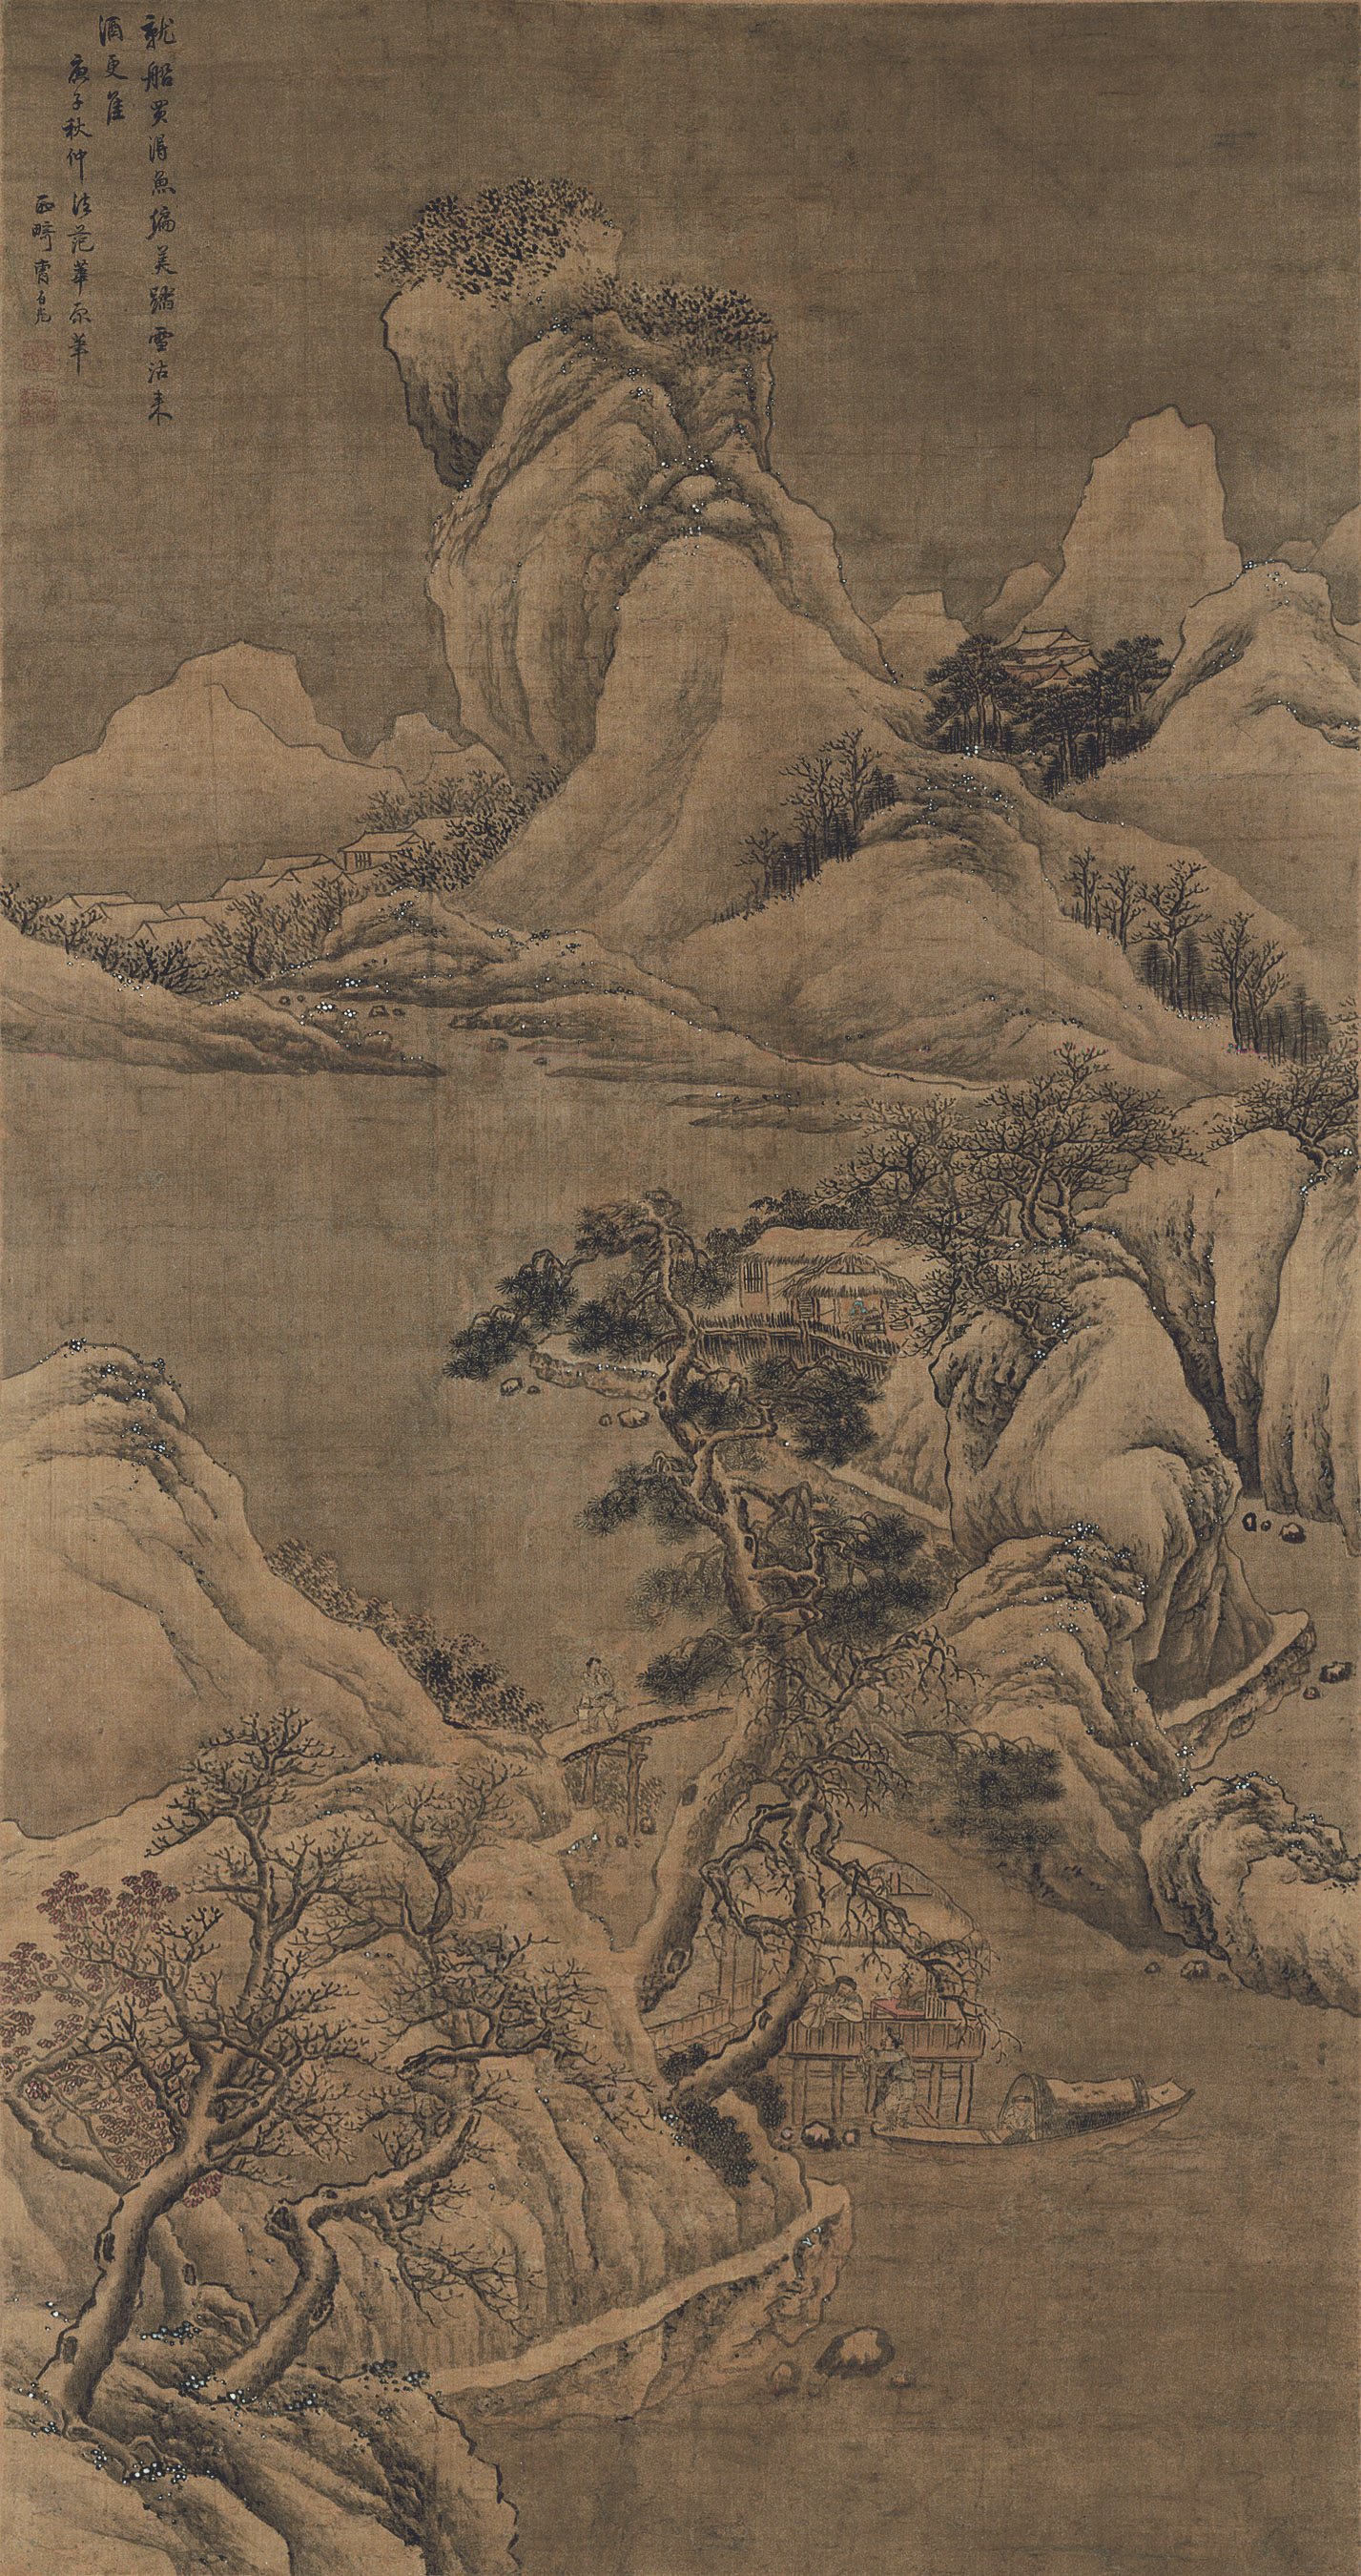 CAO YOUGUANG (17TH CENTURY)